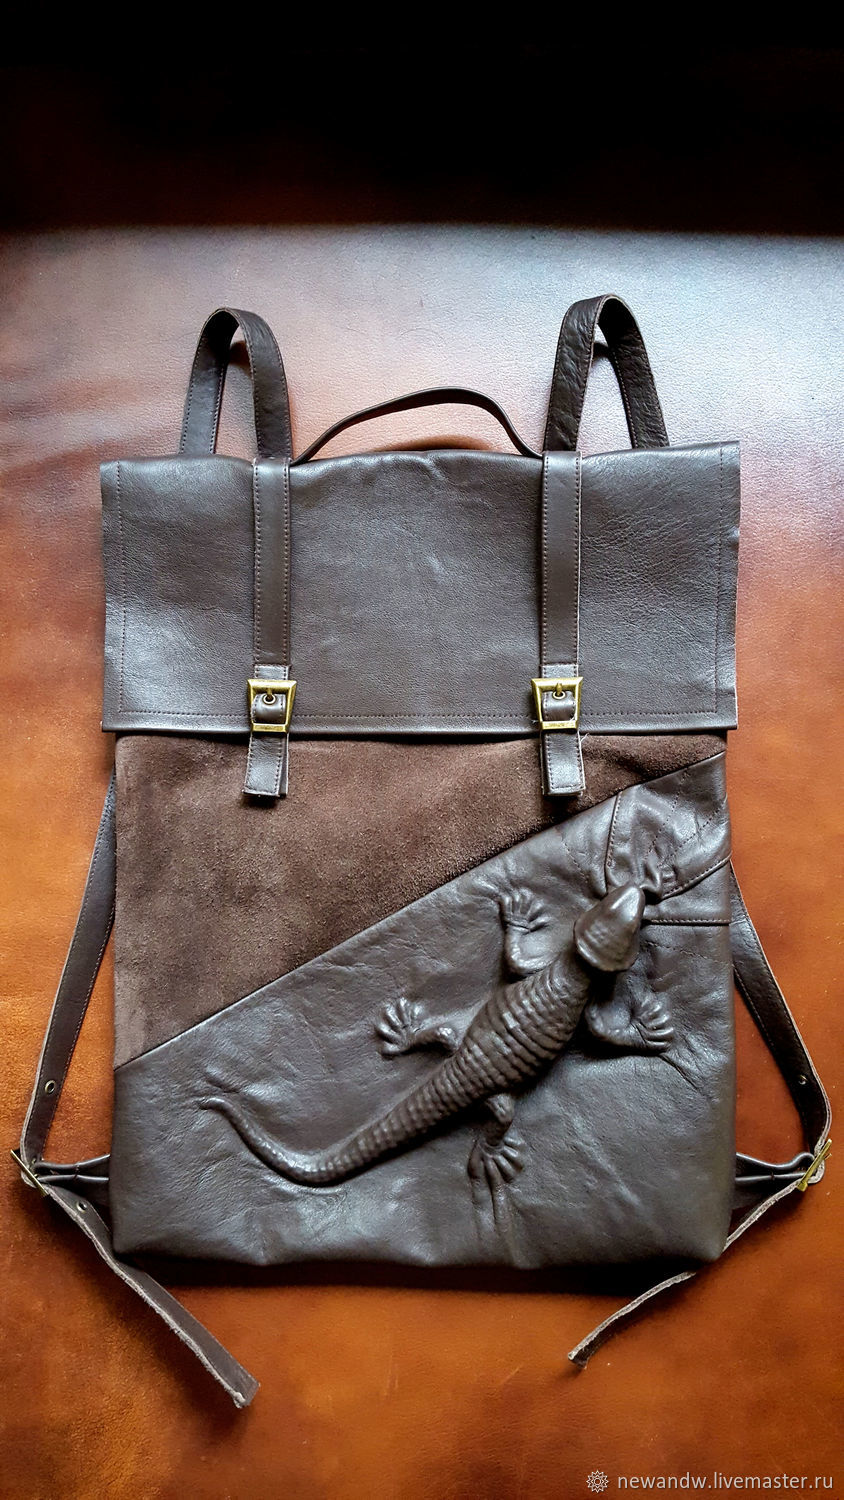 3D Lizard Backpack made of brown leather and suede, Backpacks, Moscow,  Фото №1